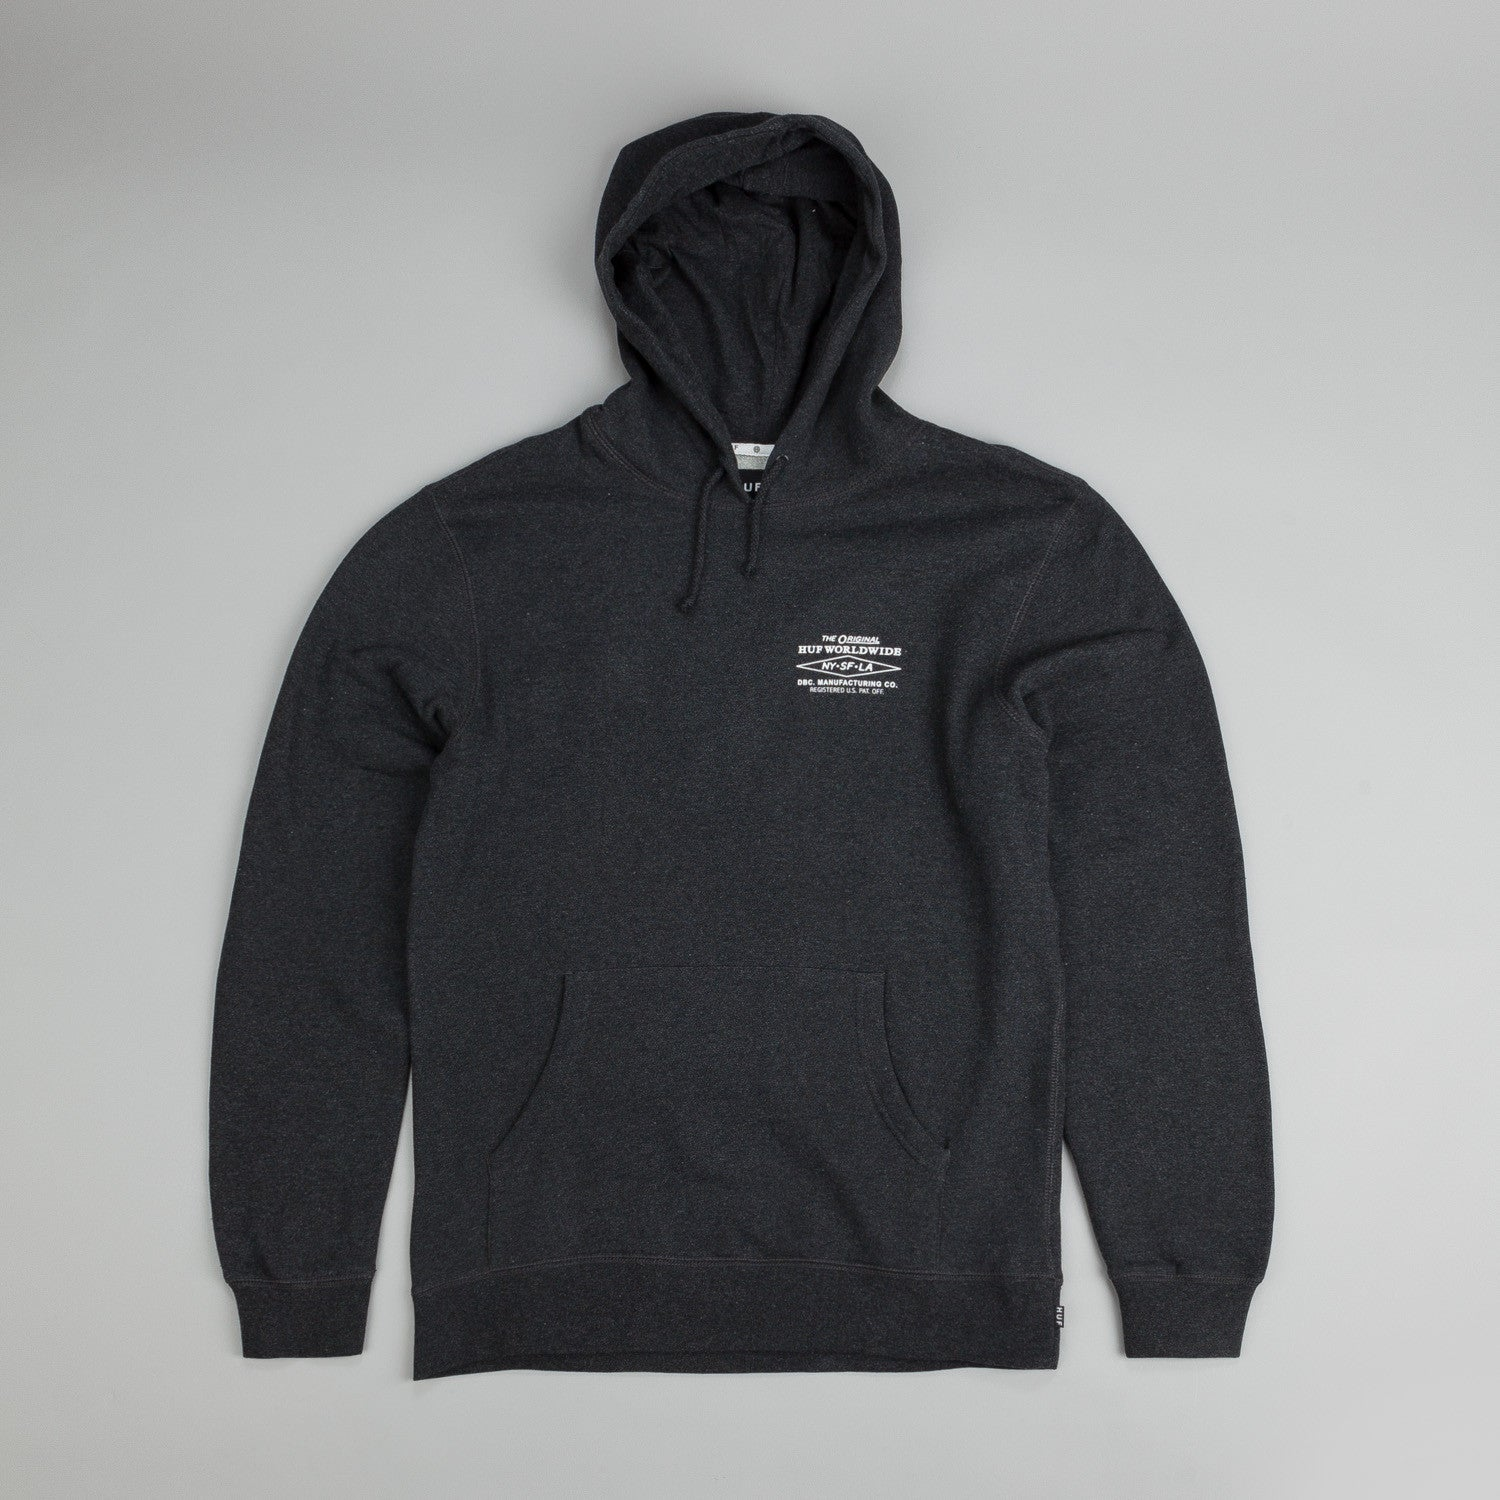 Huf Heritage Hooded Sweatshirt Charcoal Heather